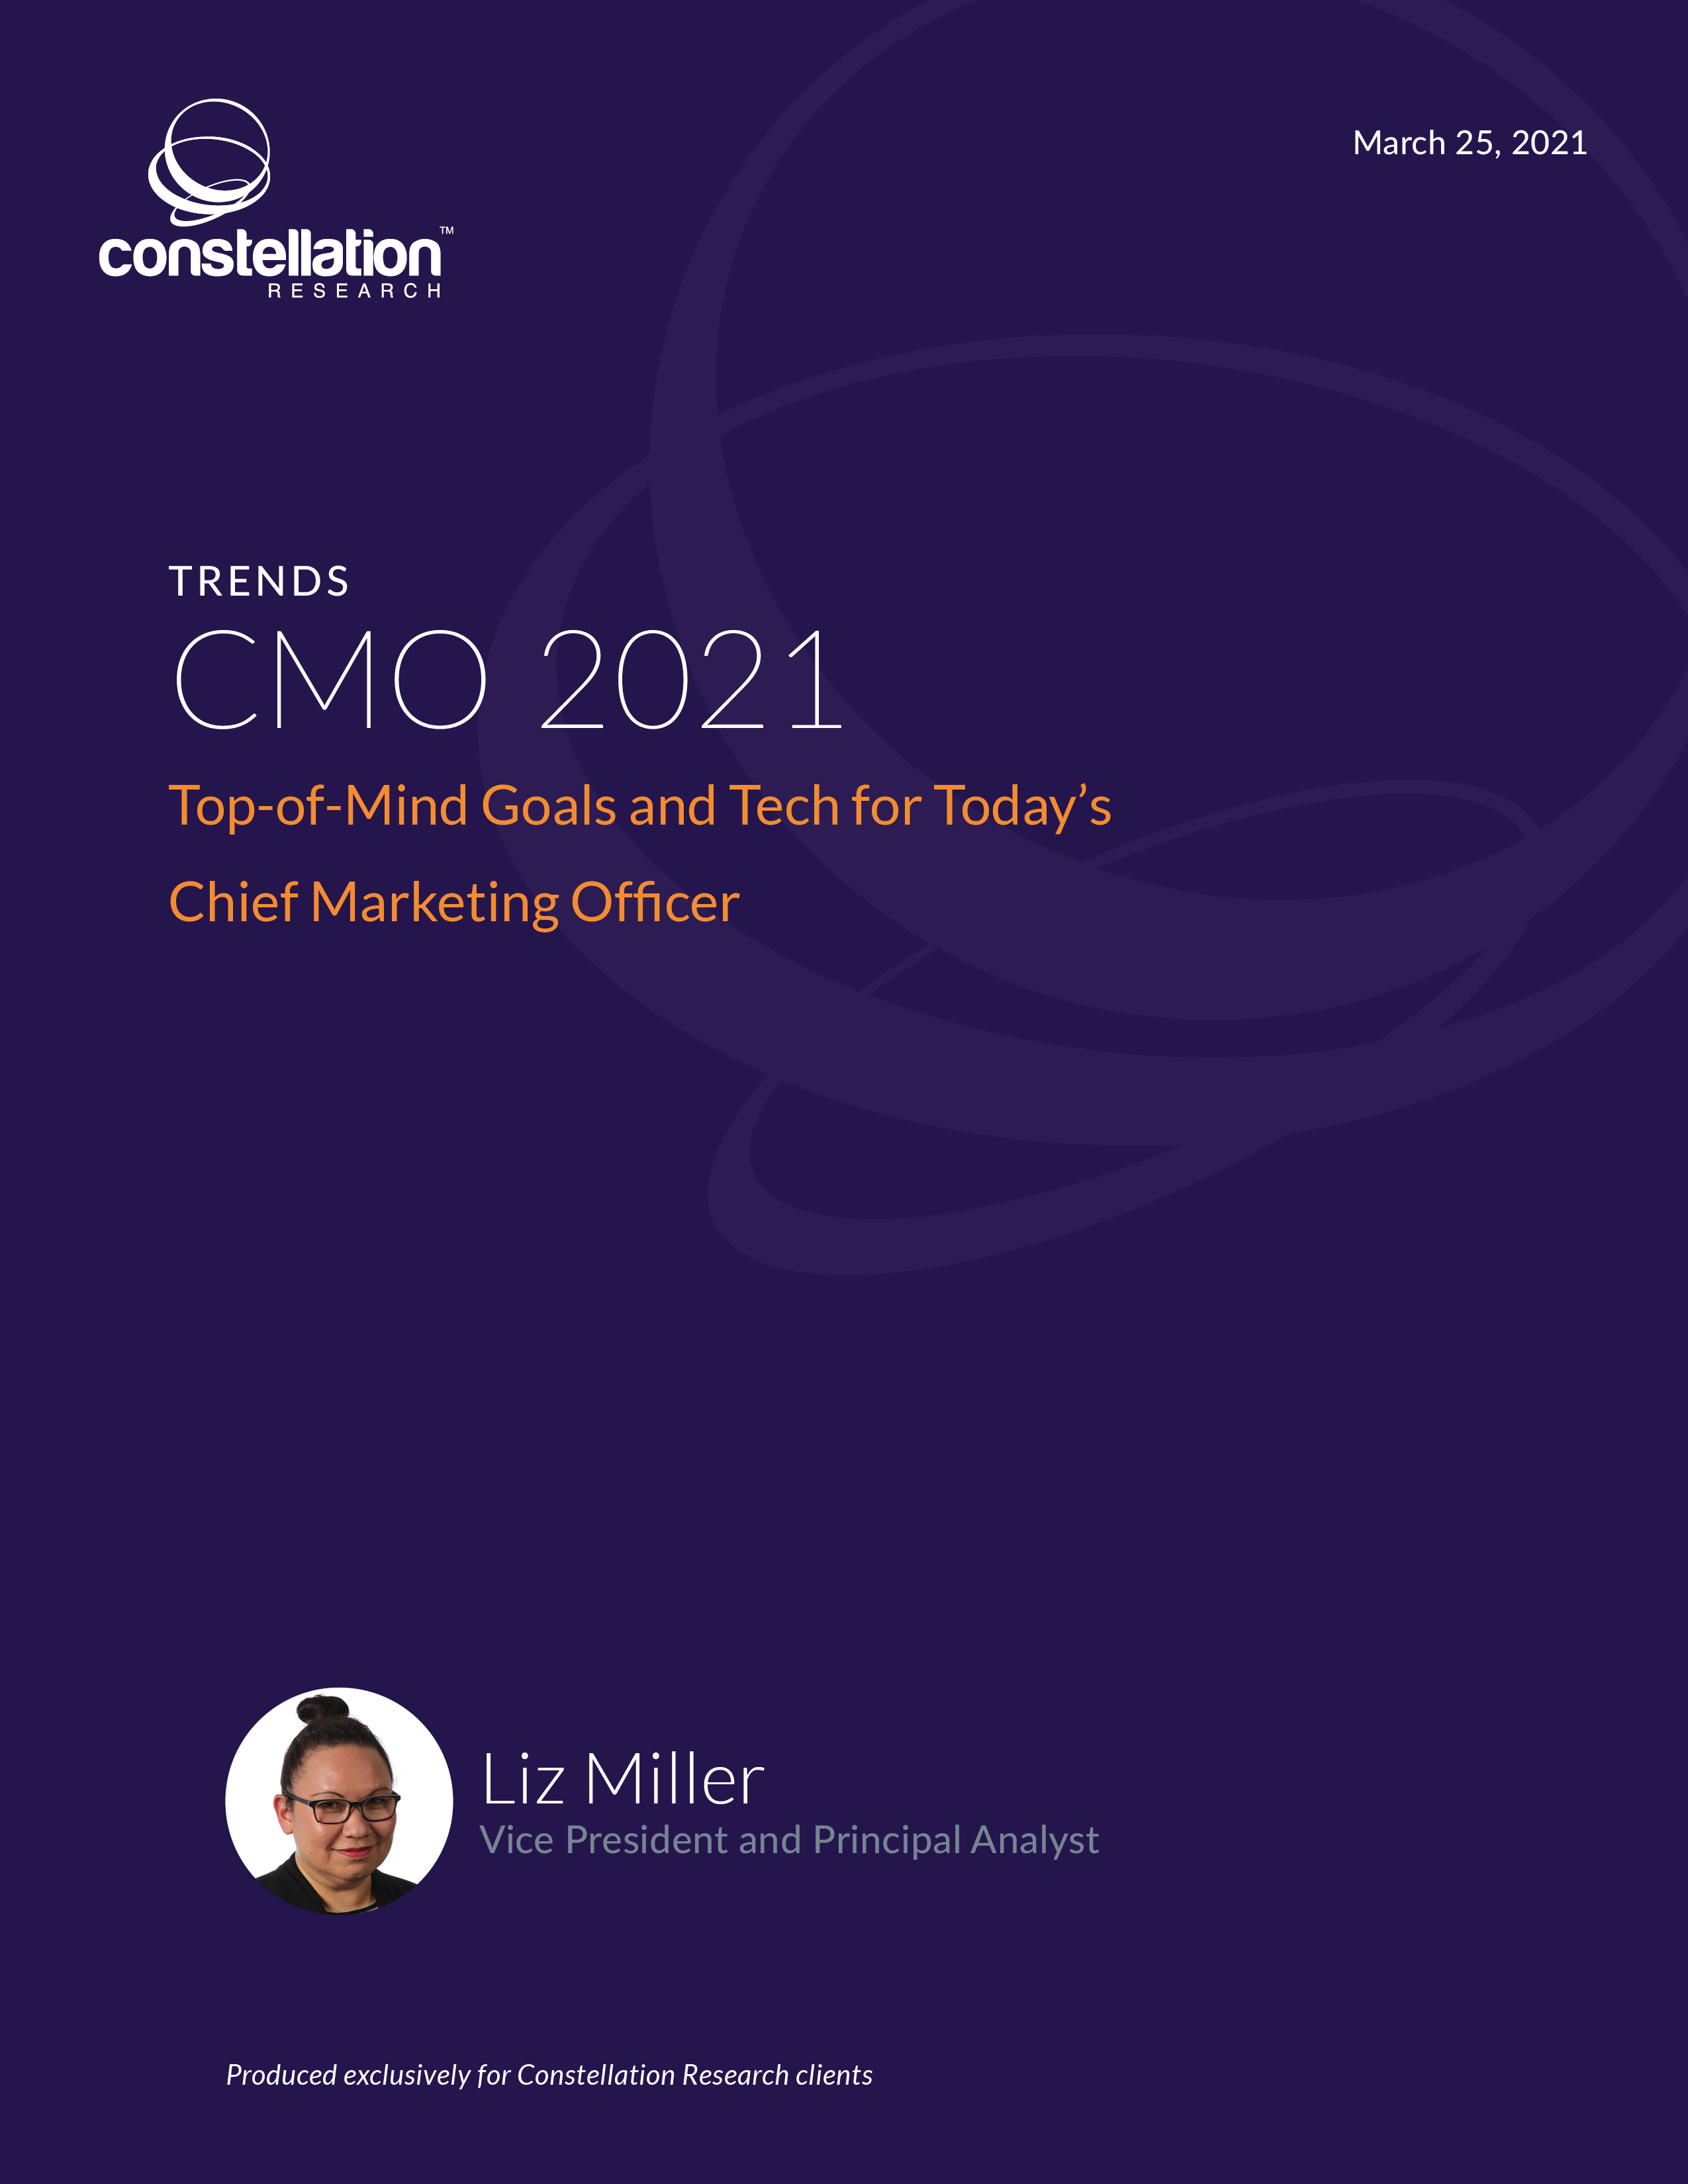 rwang0: MypOV: this is great! NEW Research – Trends: CMO 2021 https://t.co/UwVz3sEmVH by @lizkmiller @constellationr #Marketing #CMO #adobesummit